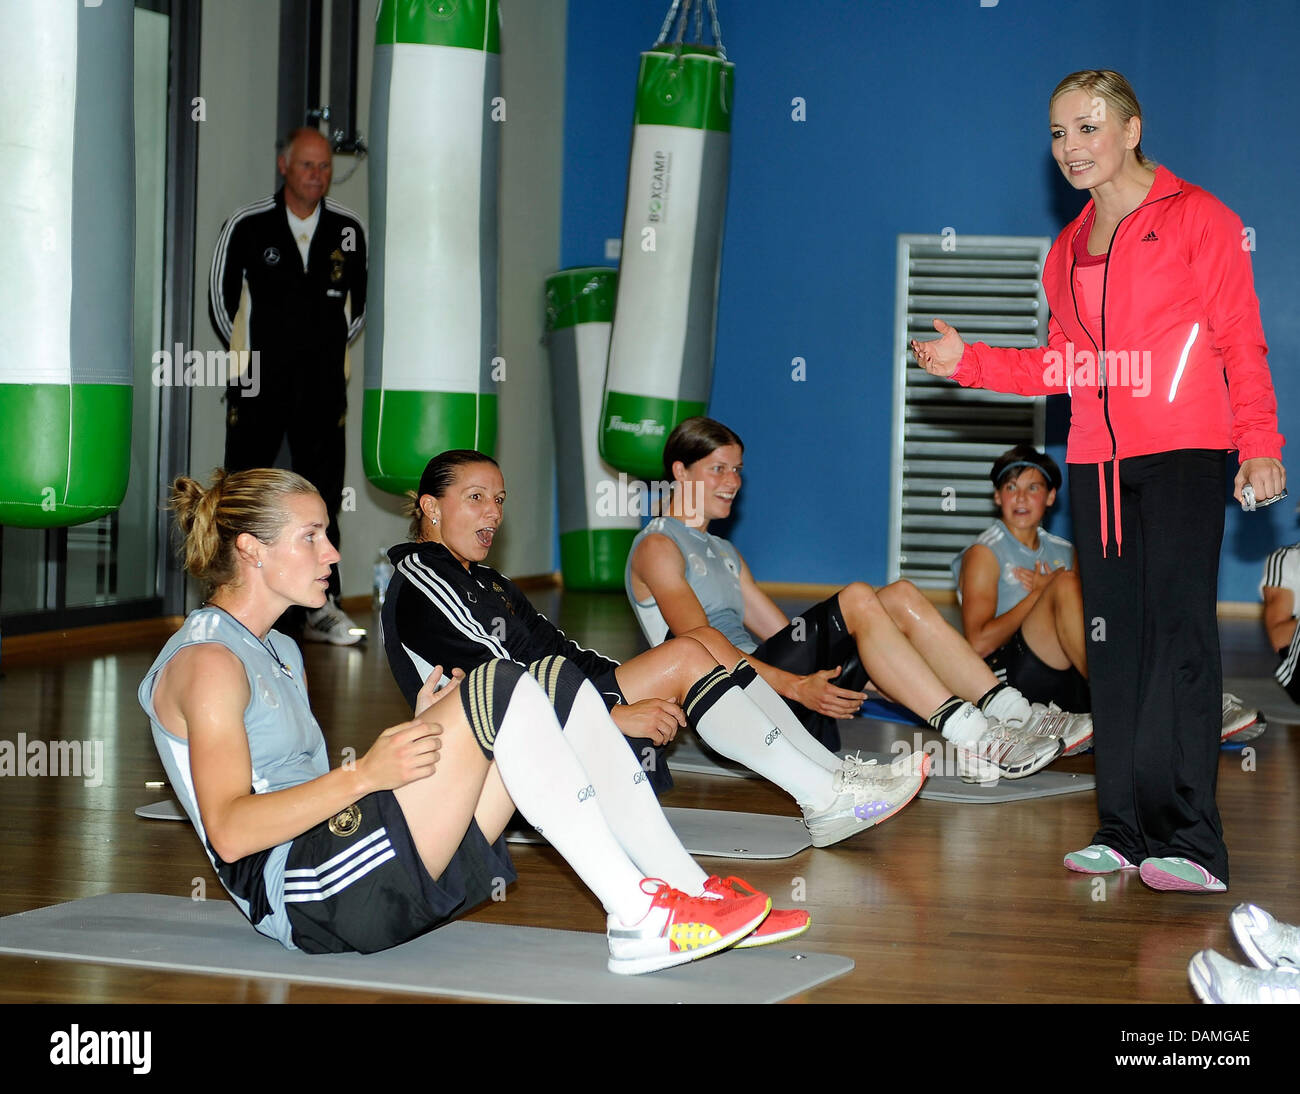 Former boxing world champion Regina Halmich is talking to players of the German national soccer team during a training - Stock Image